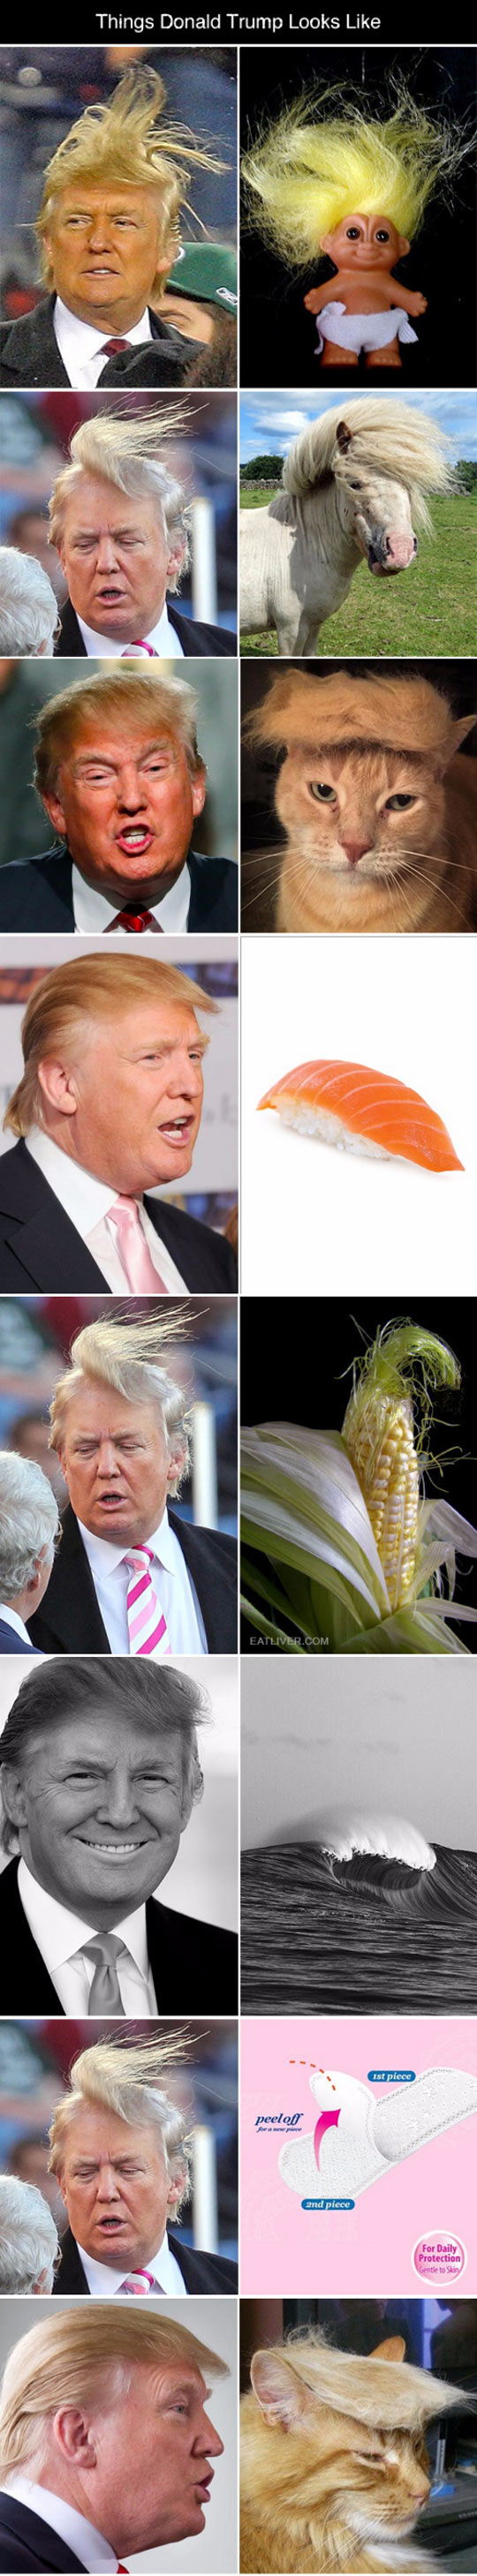 1funny-donald-trump-hair-looking-like-things